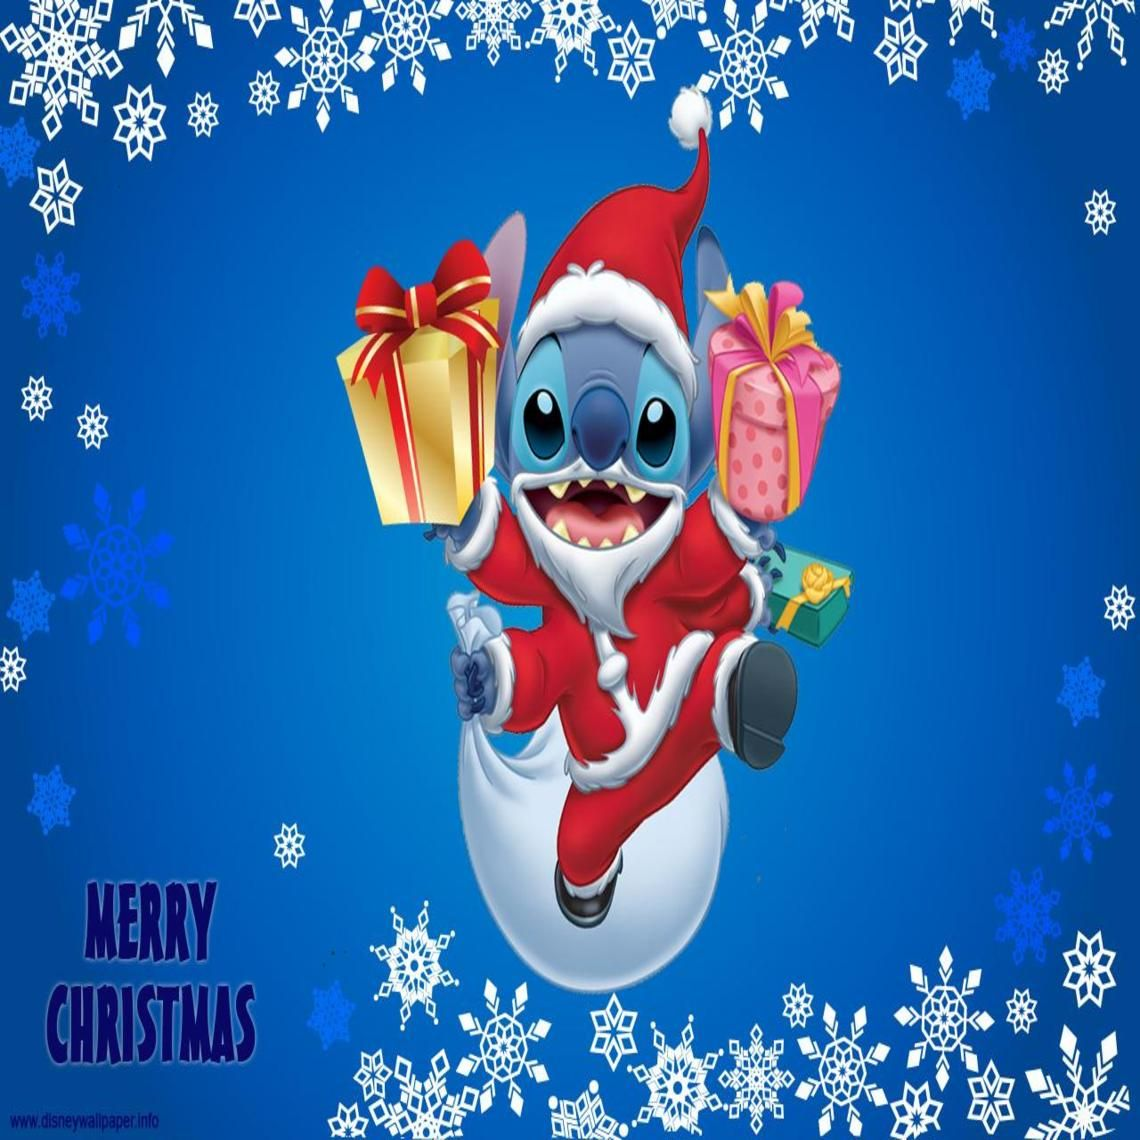 Lilo And Stitch Christmas Wallpapers Hd